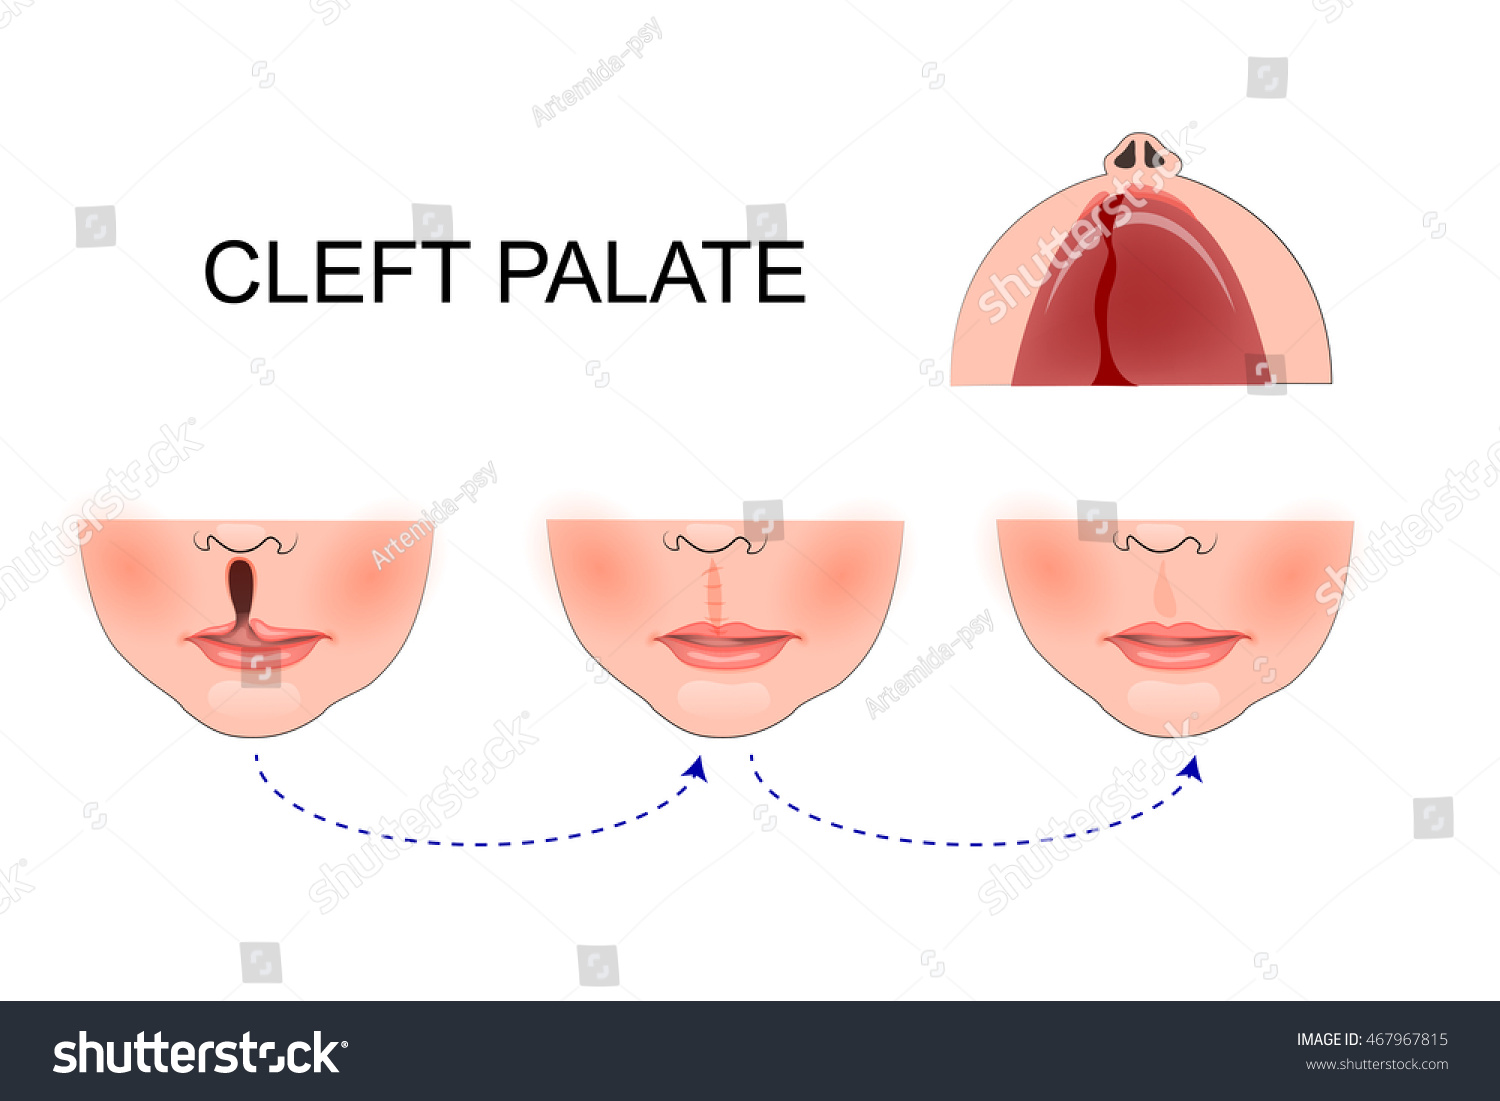 Illustration Cleft Palate Child Plastic Surgery Stock Vector ...